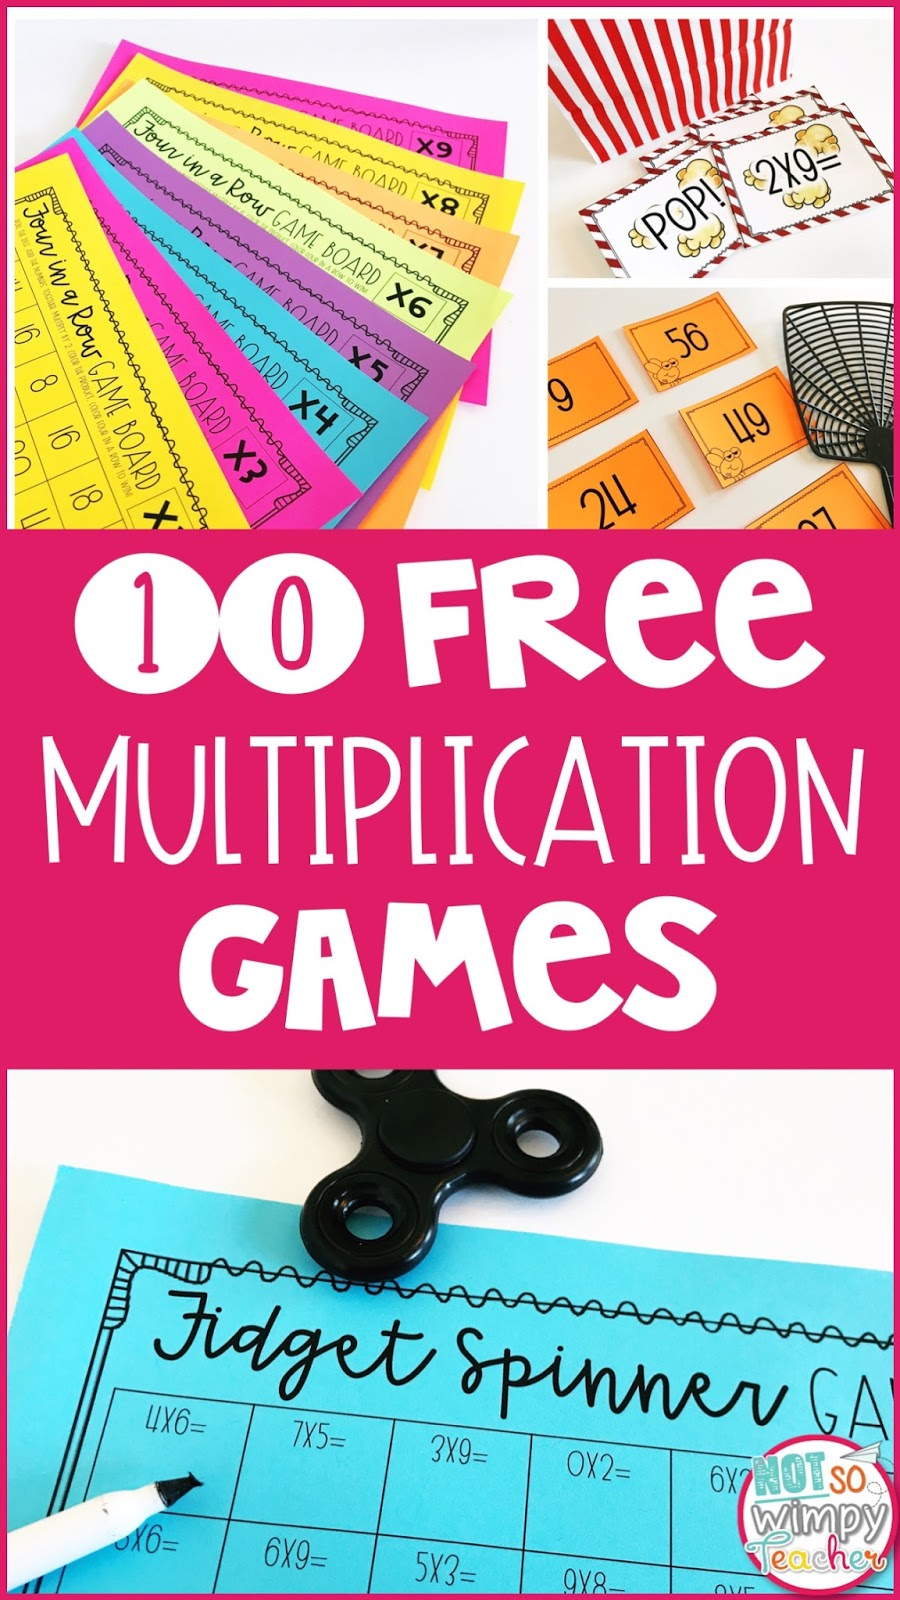 It's just a photo of Monster Multiplication Facts Games Printable